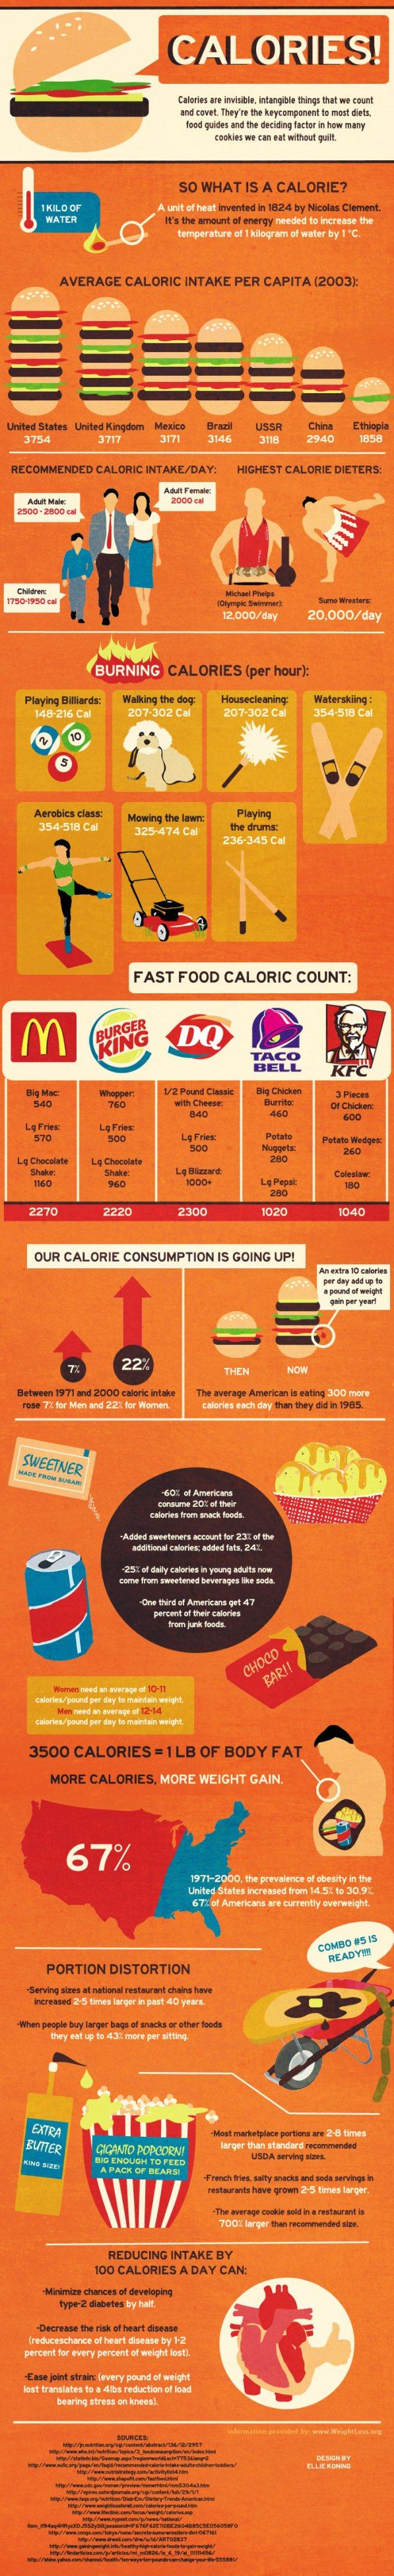 Exactly What You Should Eat Every Day In 6 Simple Charts Healthy Aging Calorie Counting Chart Calorie